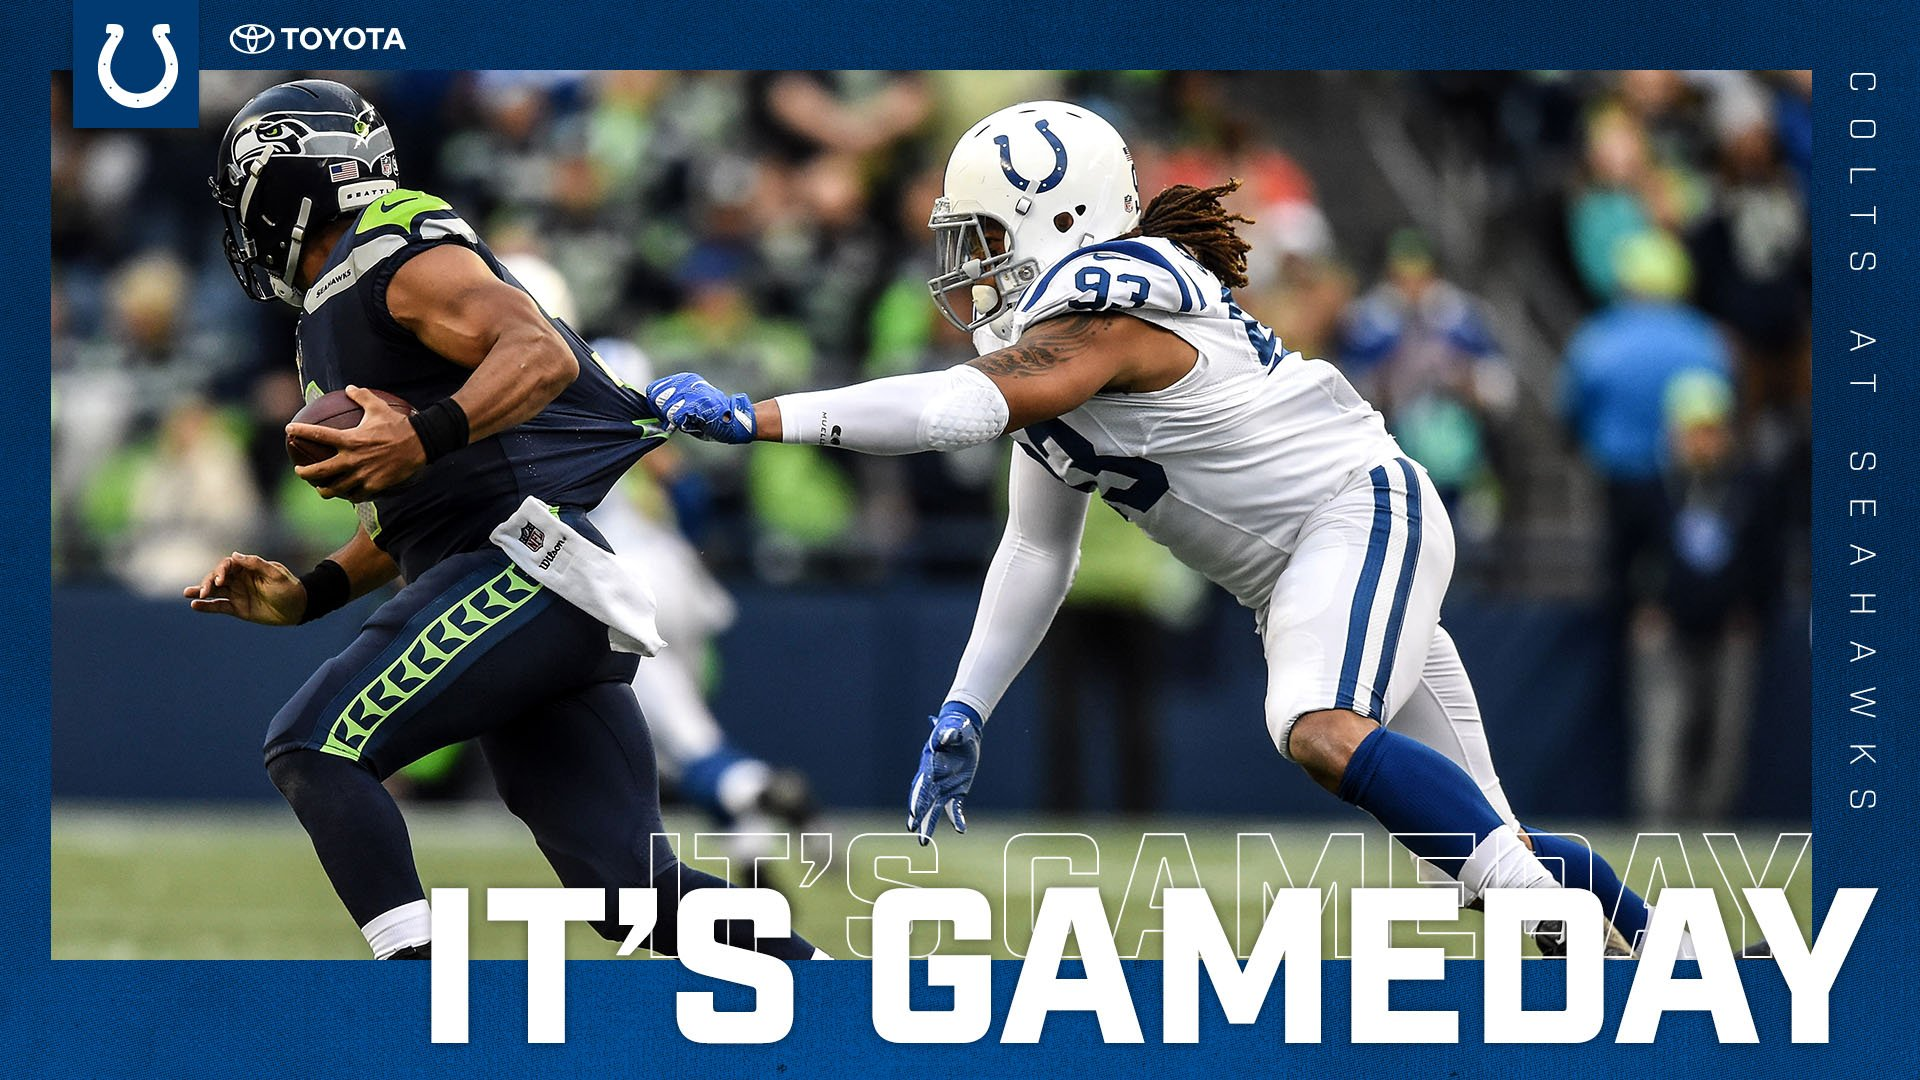 IT'S GAMEDAY! #INDvsSEA   ��: https://t.co/Ig5CEF2472 https://t.co/Swvrgk4C7b